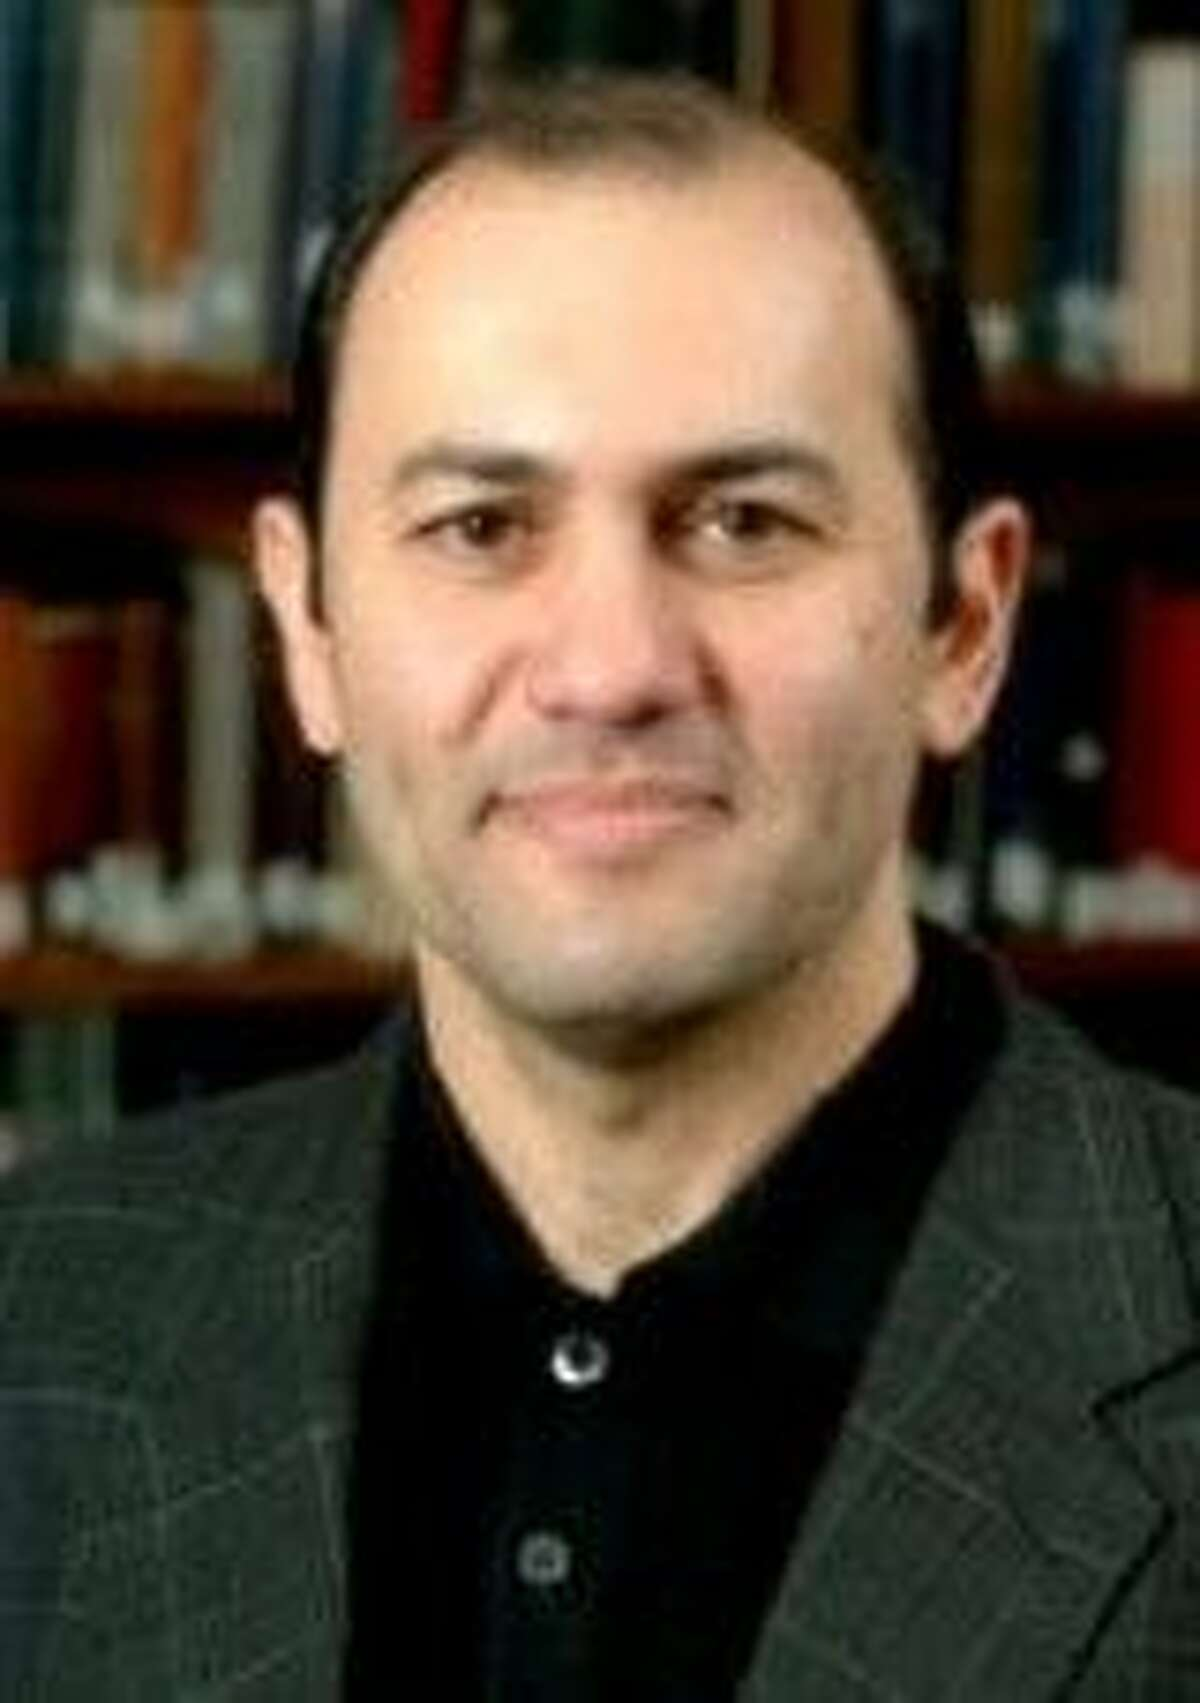 Hossein Kamaly teaches in the Department of Asian & Middle Eastern Cultures Department (AMEC) and the Program in Comparative Literature at Barnard College, Columbia University. Trained as a historian at Columbia, he focuses on Islamic intellectual history and the broad field of Perso-Islamic studies. He iscommitted to close reading of classical Islamic texts in Arabic, Persian and Turkish. His book, God & Man in Tehran is forthcoming from Columbia University Press.